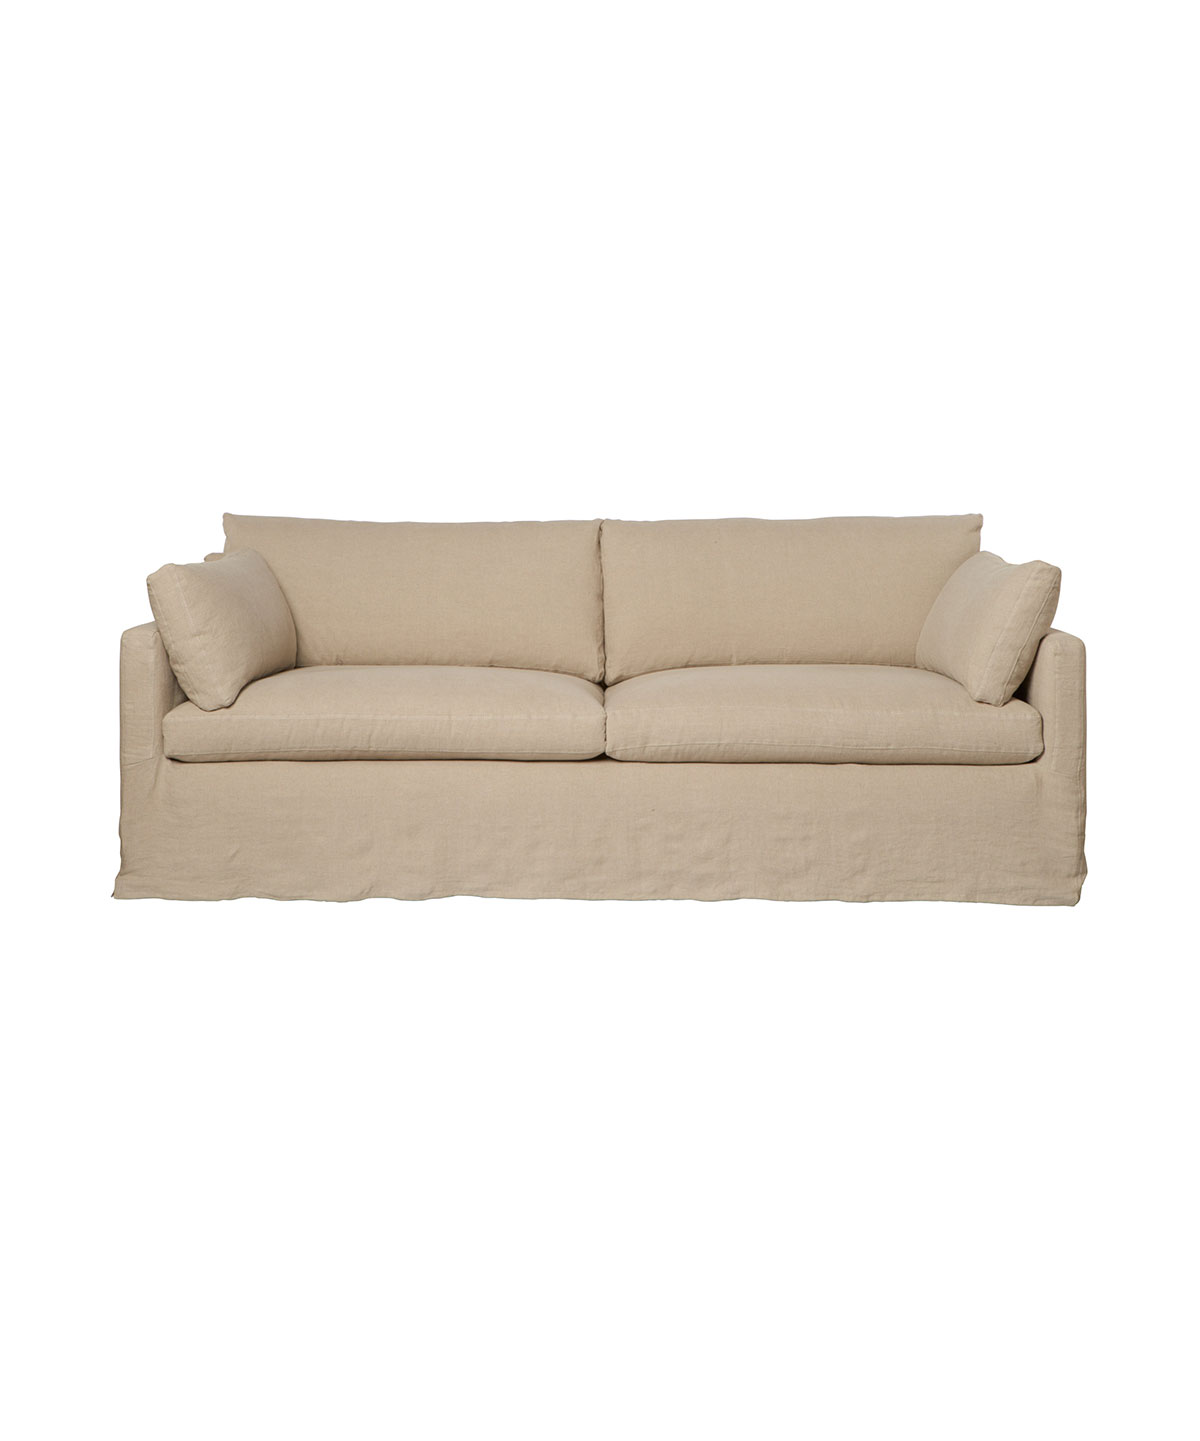 Louis Slipcovered Sofa